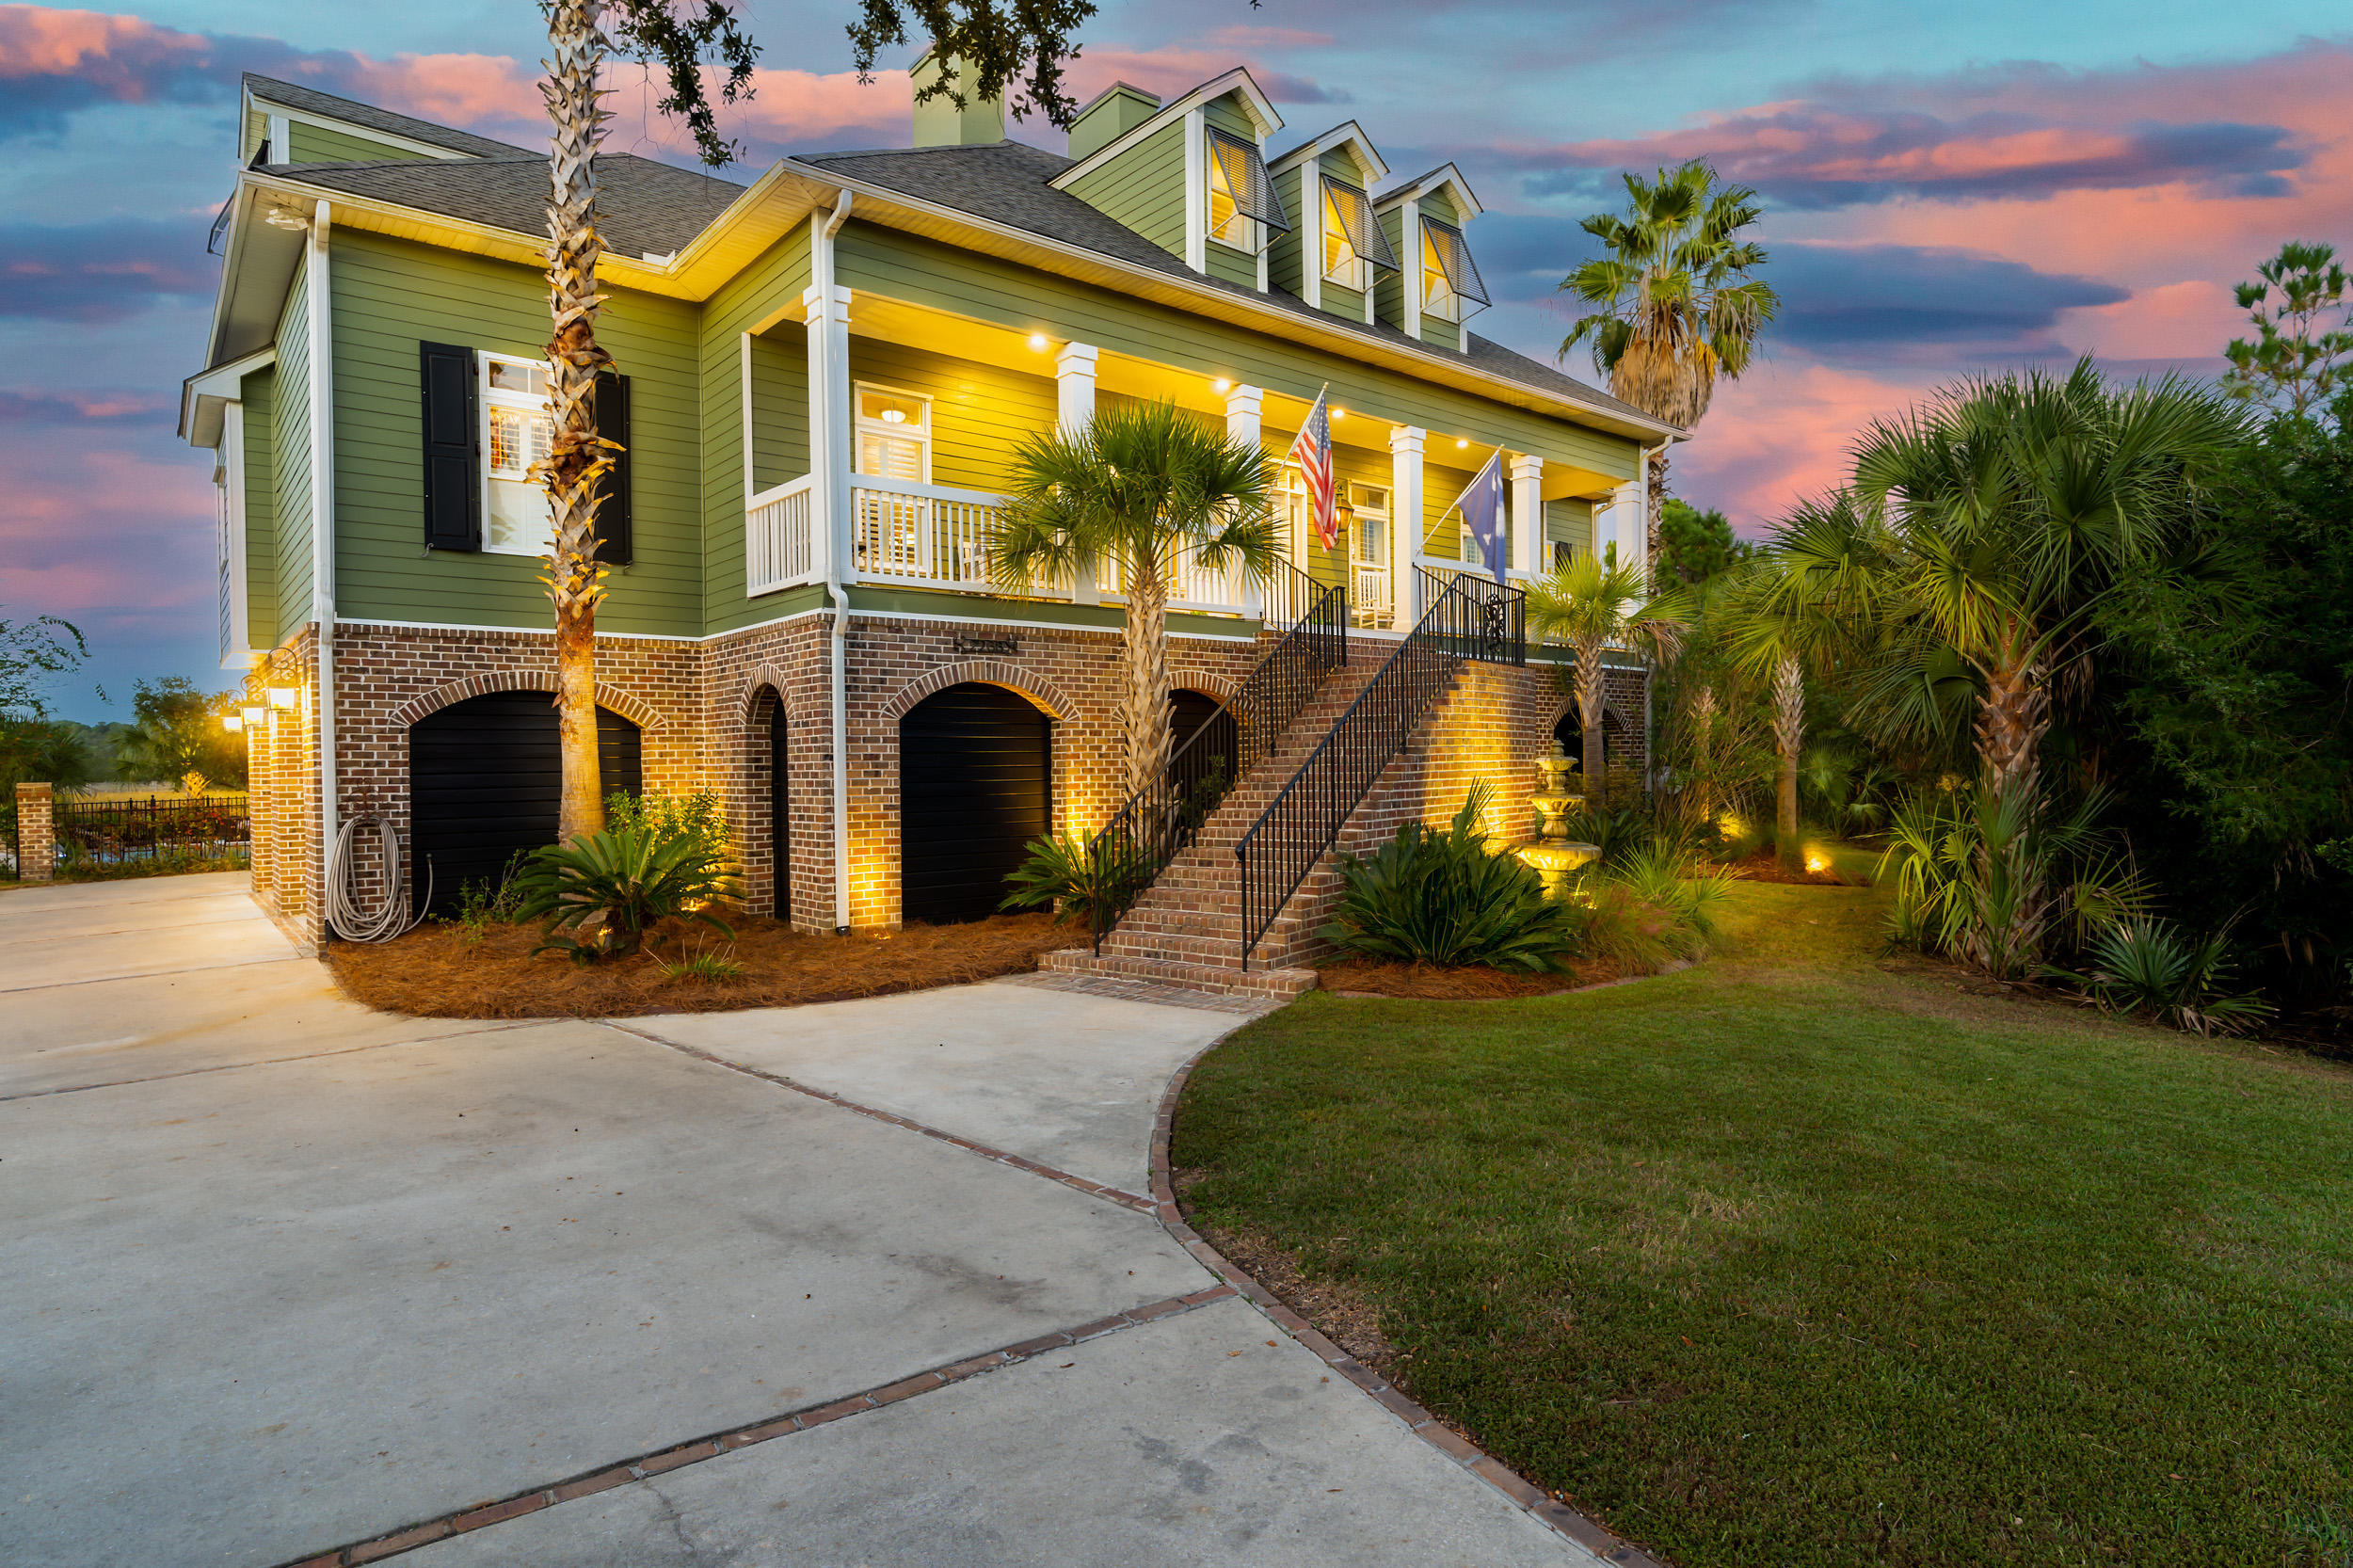 Rivertowne On The Wando Homes For Sale - 2268 Hartfords Bluff, Mount Pleasant, SC - 12